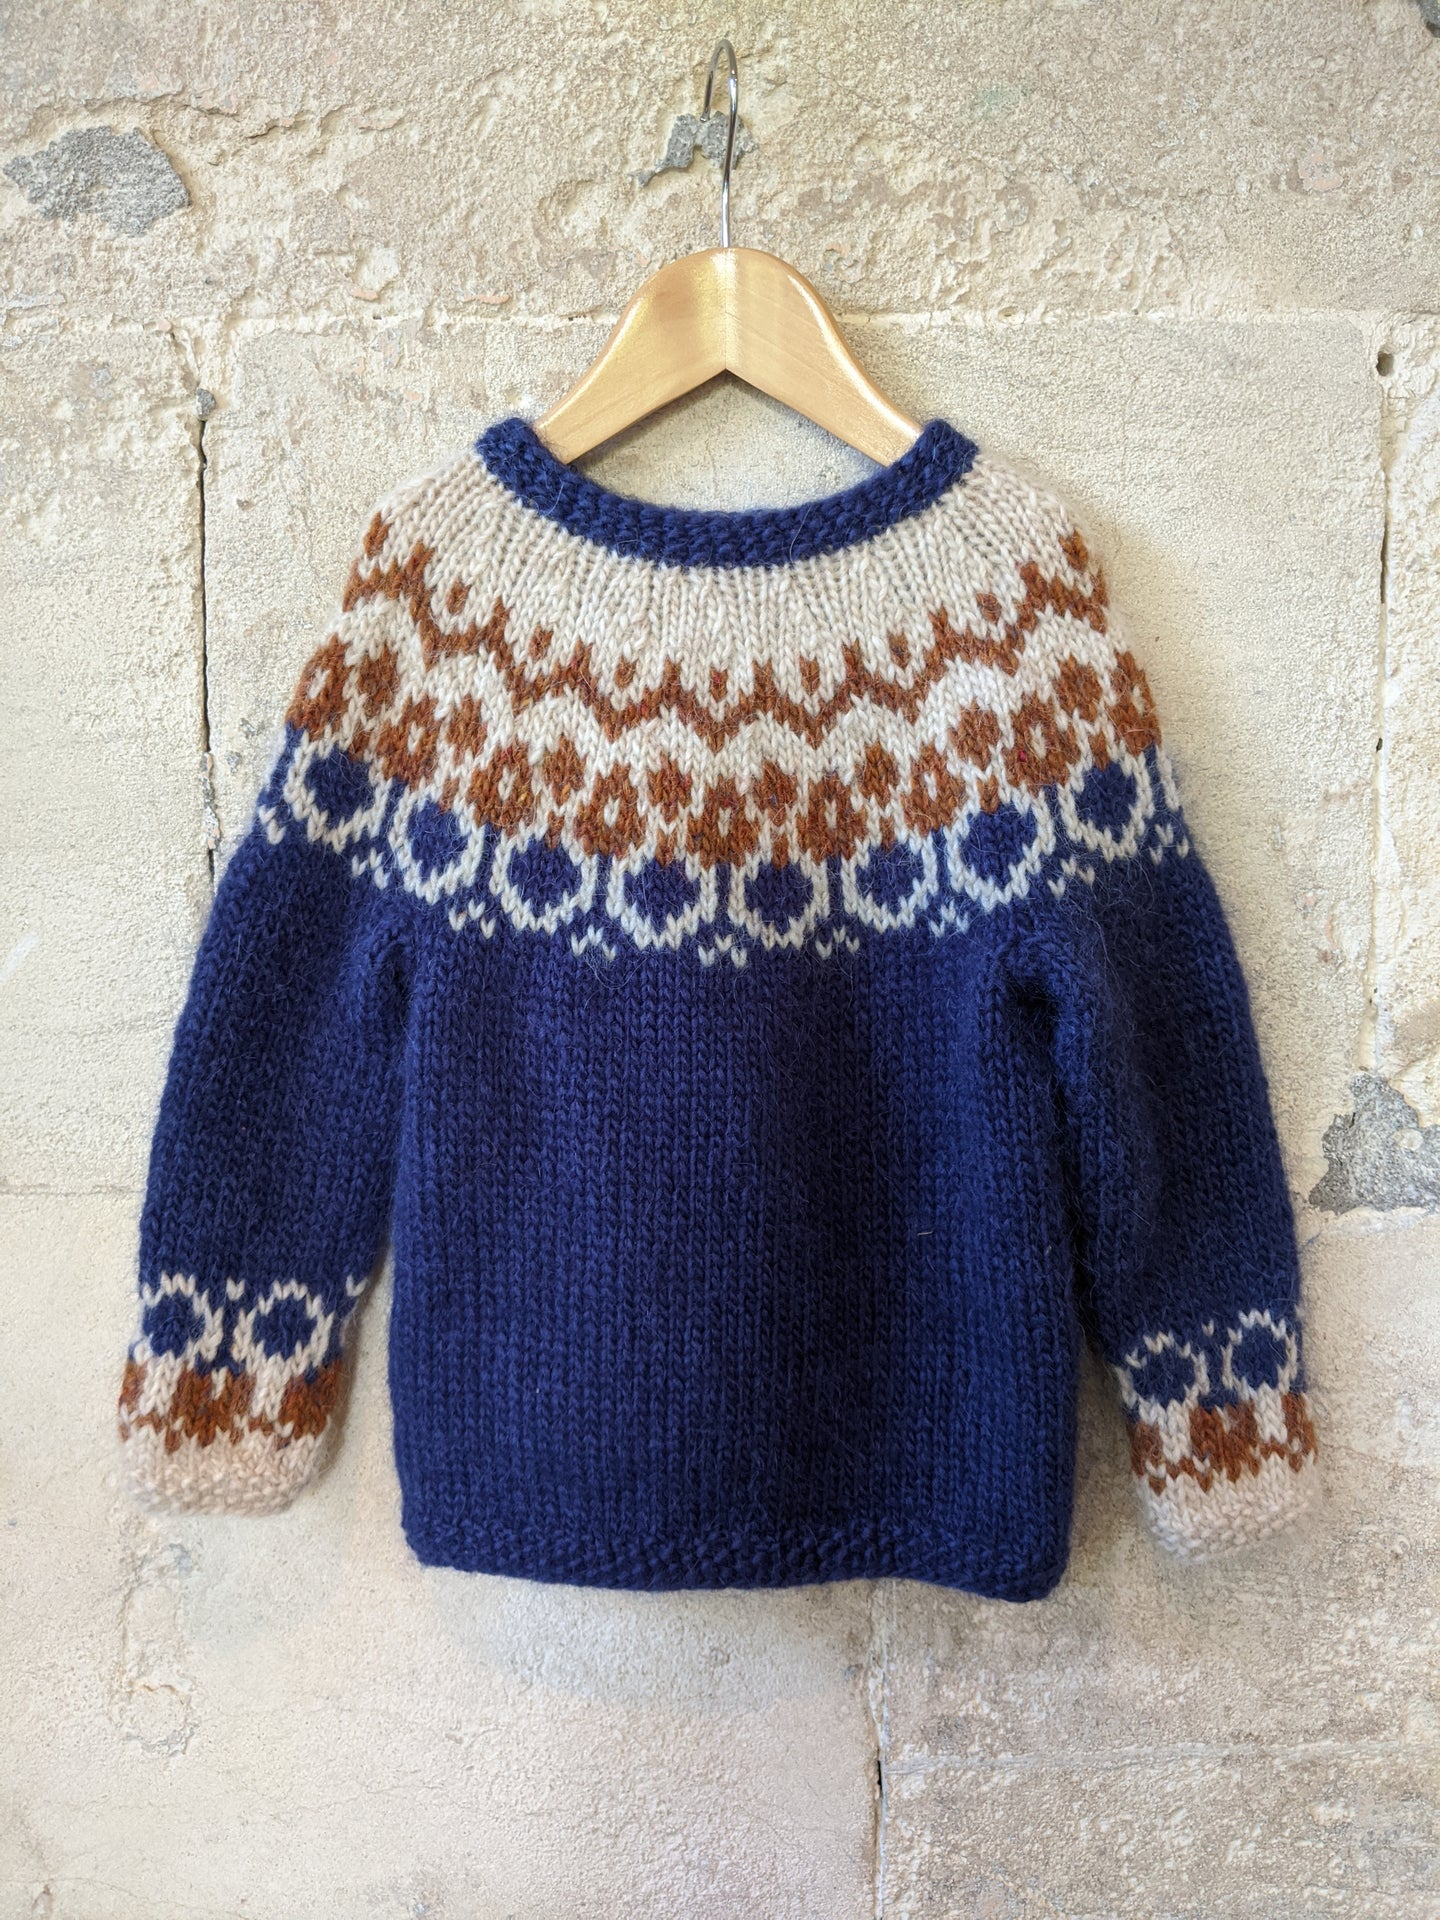 Wonderful Hand Knitted Fairisle Jumper - 5 Years